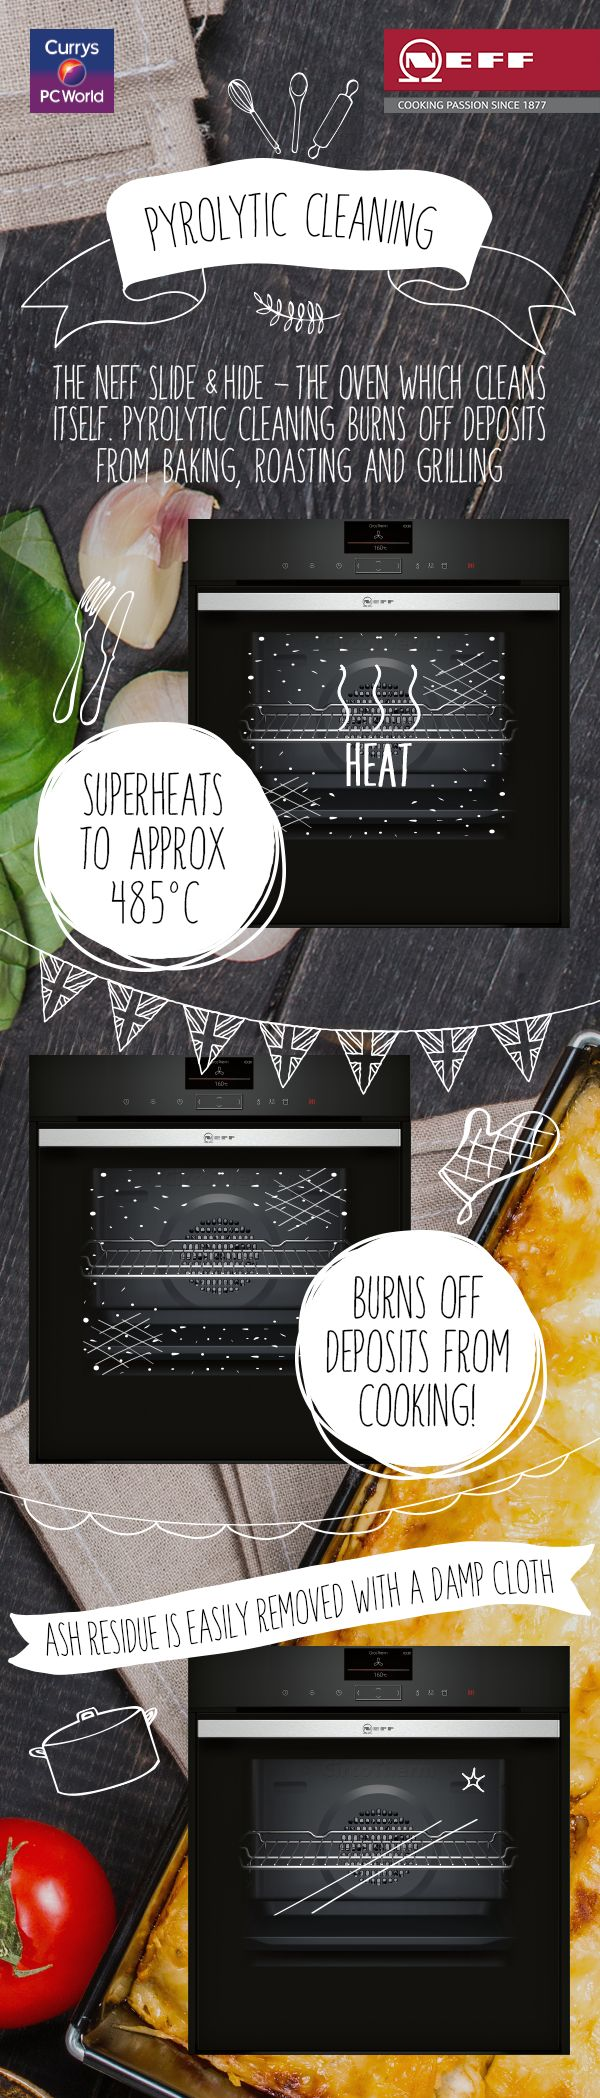 Say hello to self-cleaning ovens. The Pyrolytic Cleaning function in the Neff Slide & Hide is perfect for your post-bake wipe down! @biybyneff